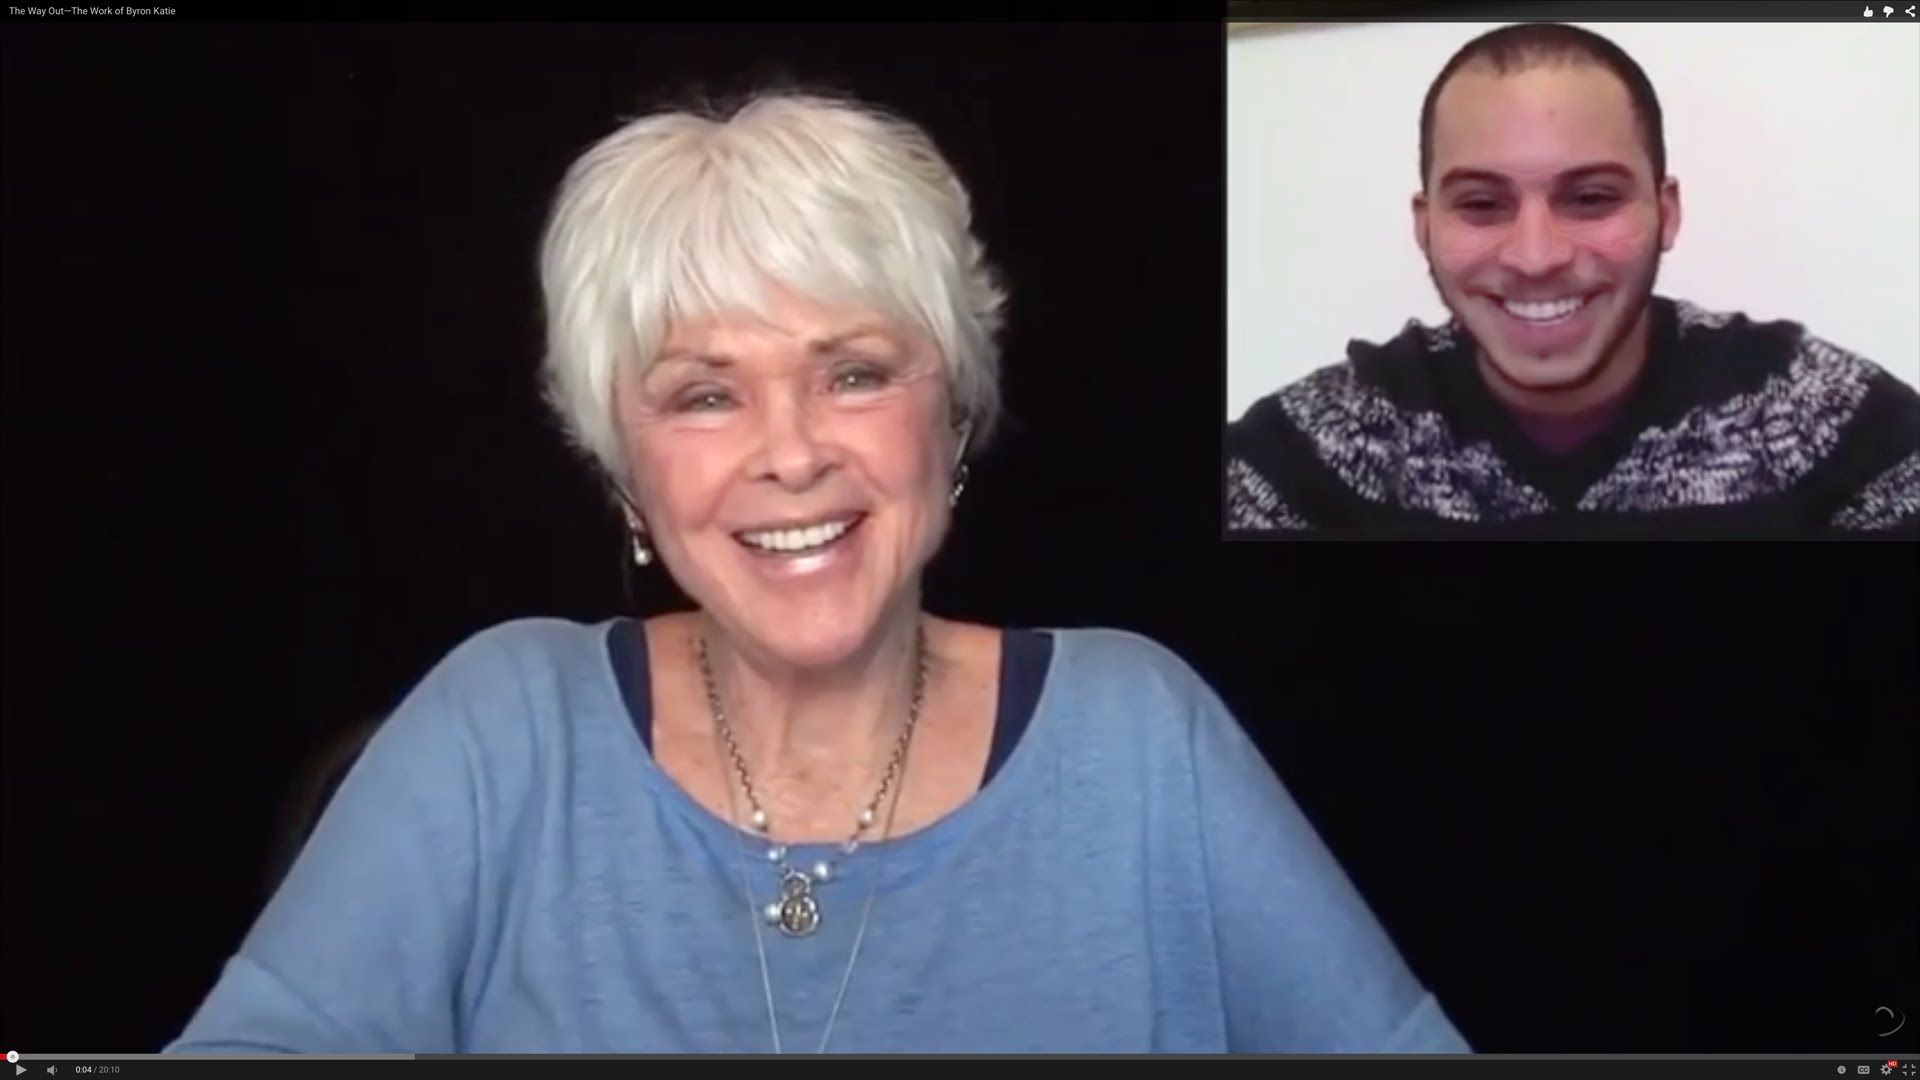 The Way Out The Work Of Byron Katie